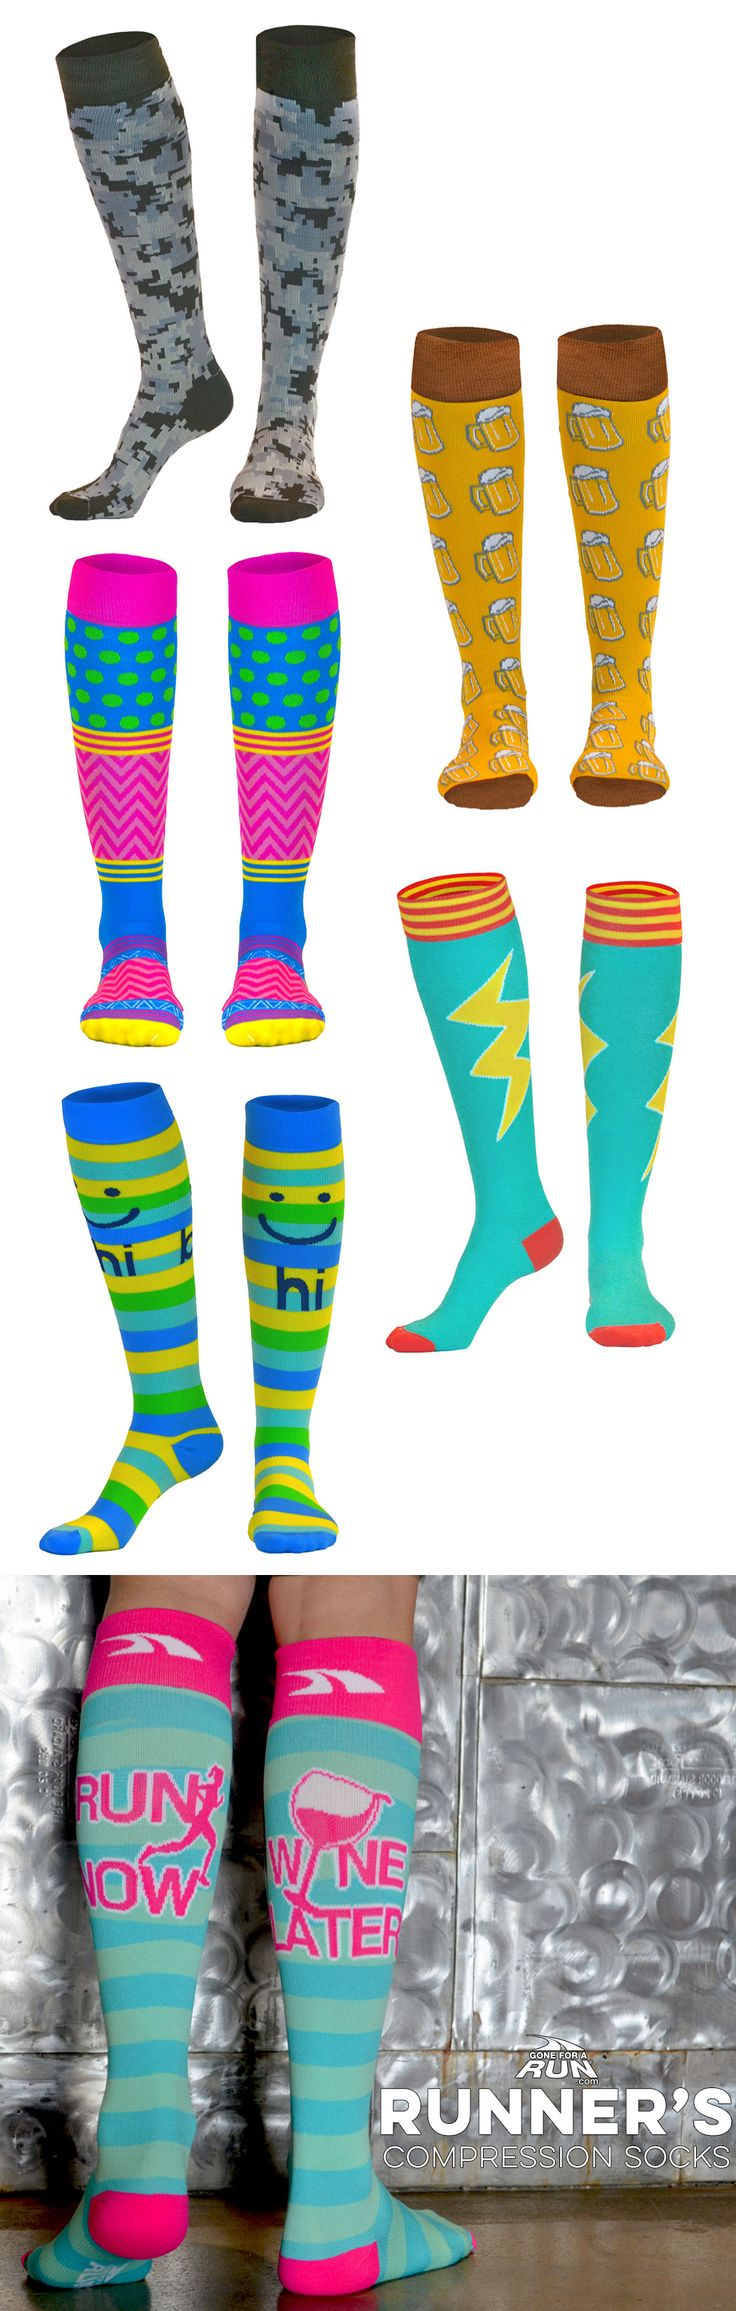 Our colorful and fun compression socks are the perfect way to add a bit of fun to any running outfit! Perfect for race day or any day!